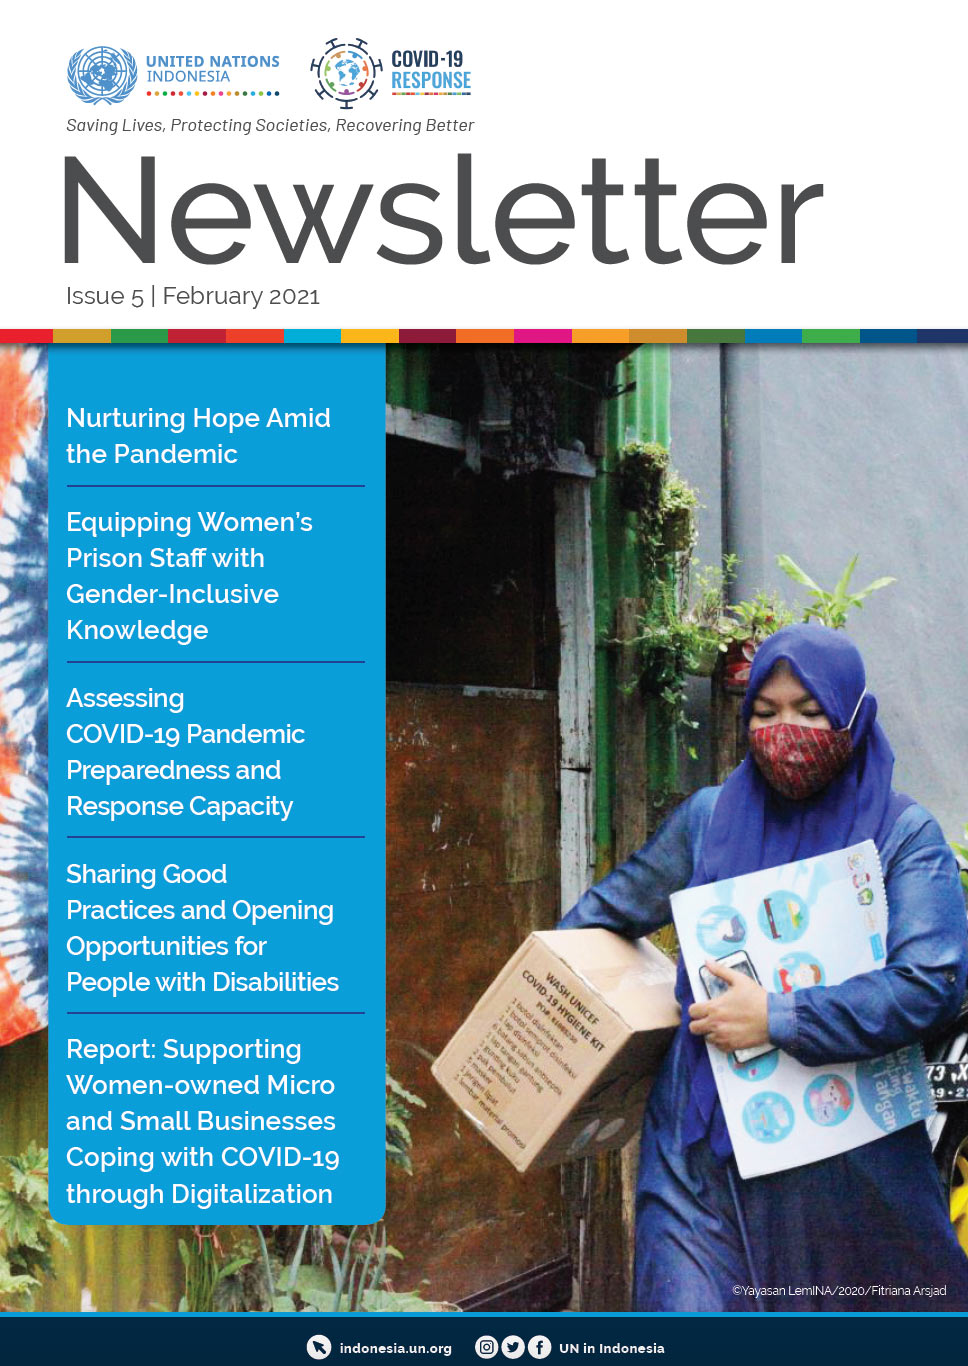 UN in Indonesia COVID-19 Response Newsletter February 2021